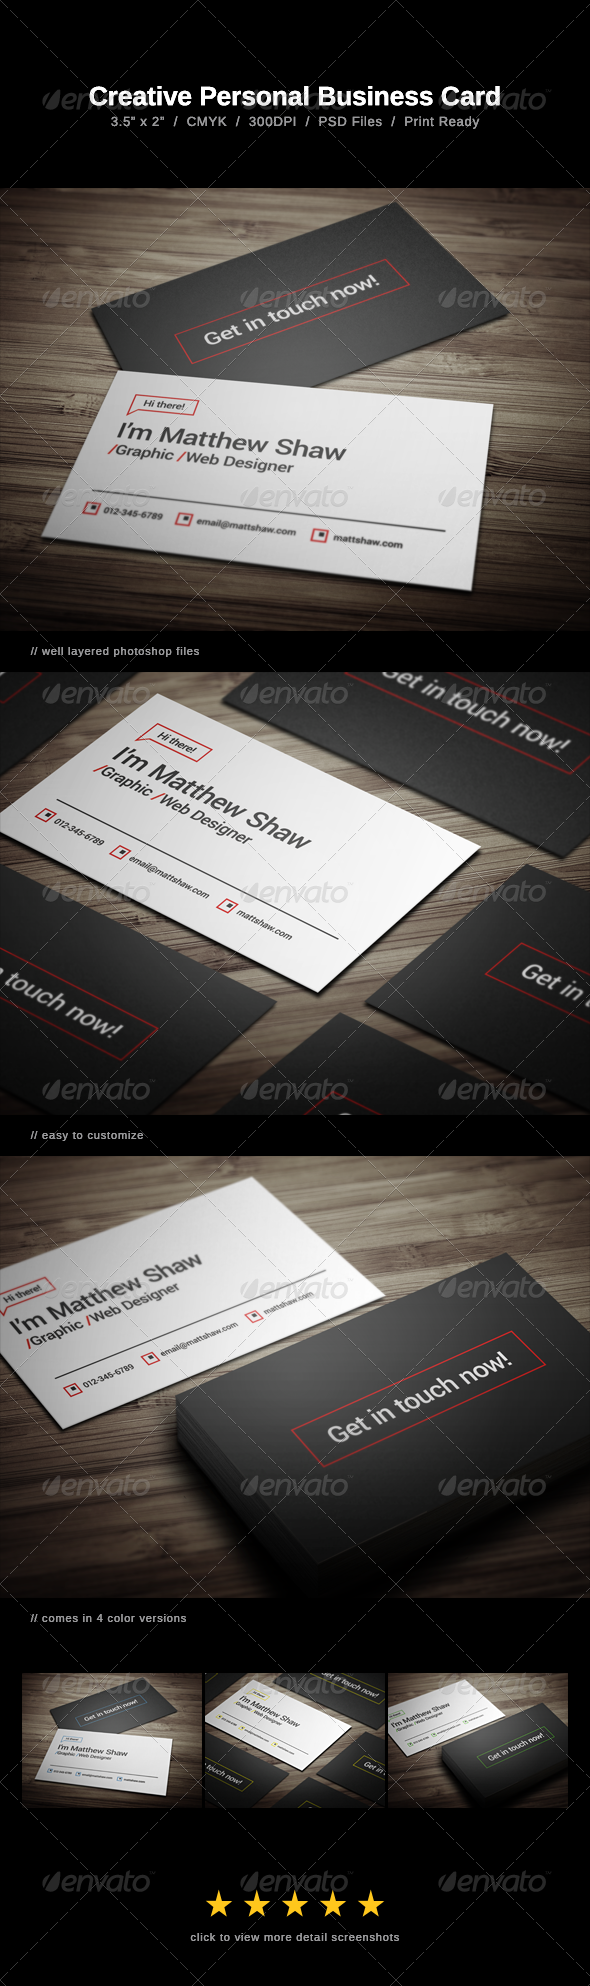 Creative personal business card fonts logos icons pinterest creative personal business card reheart Gallery